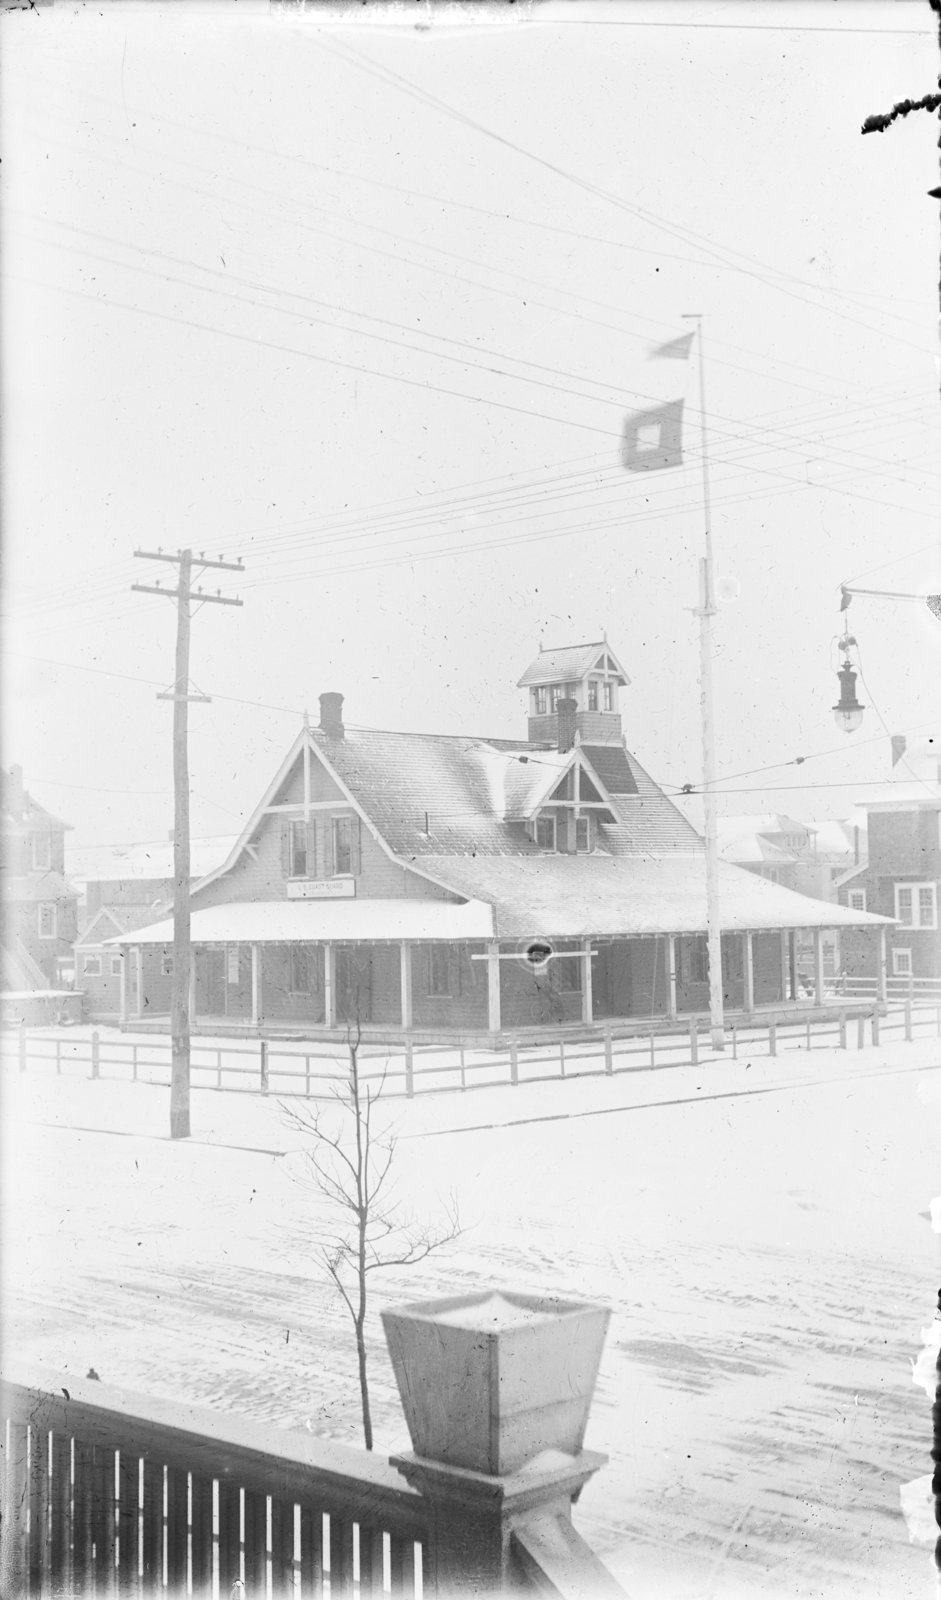 Unidentified U.S. Coast Guard Station